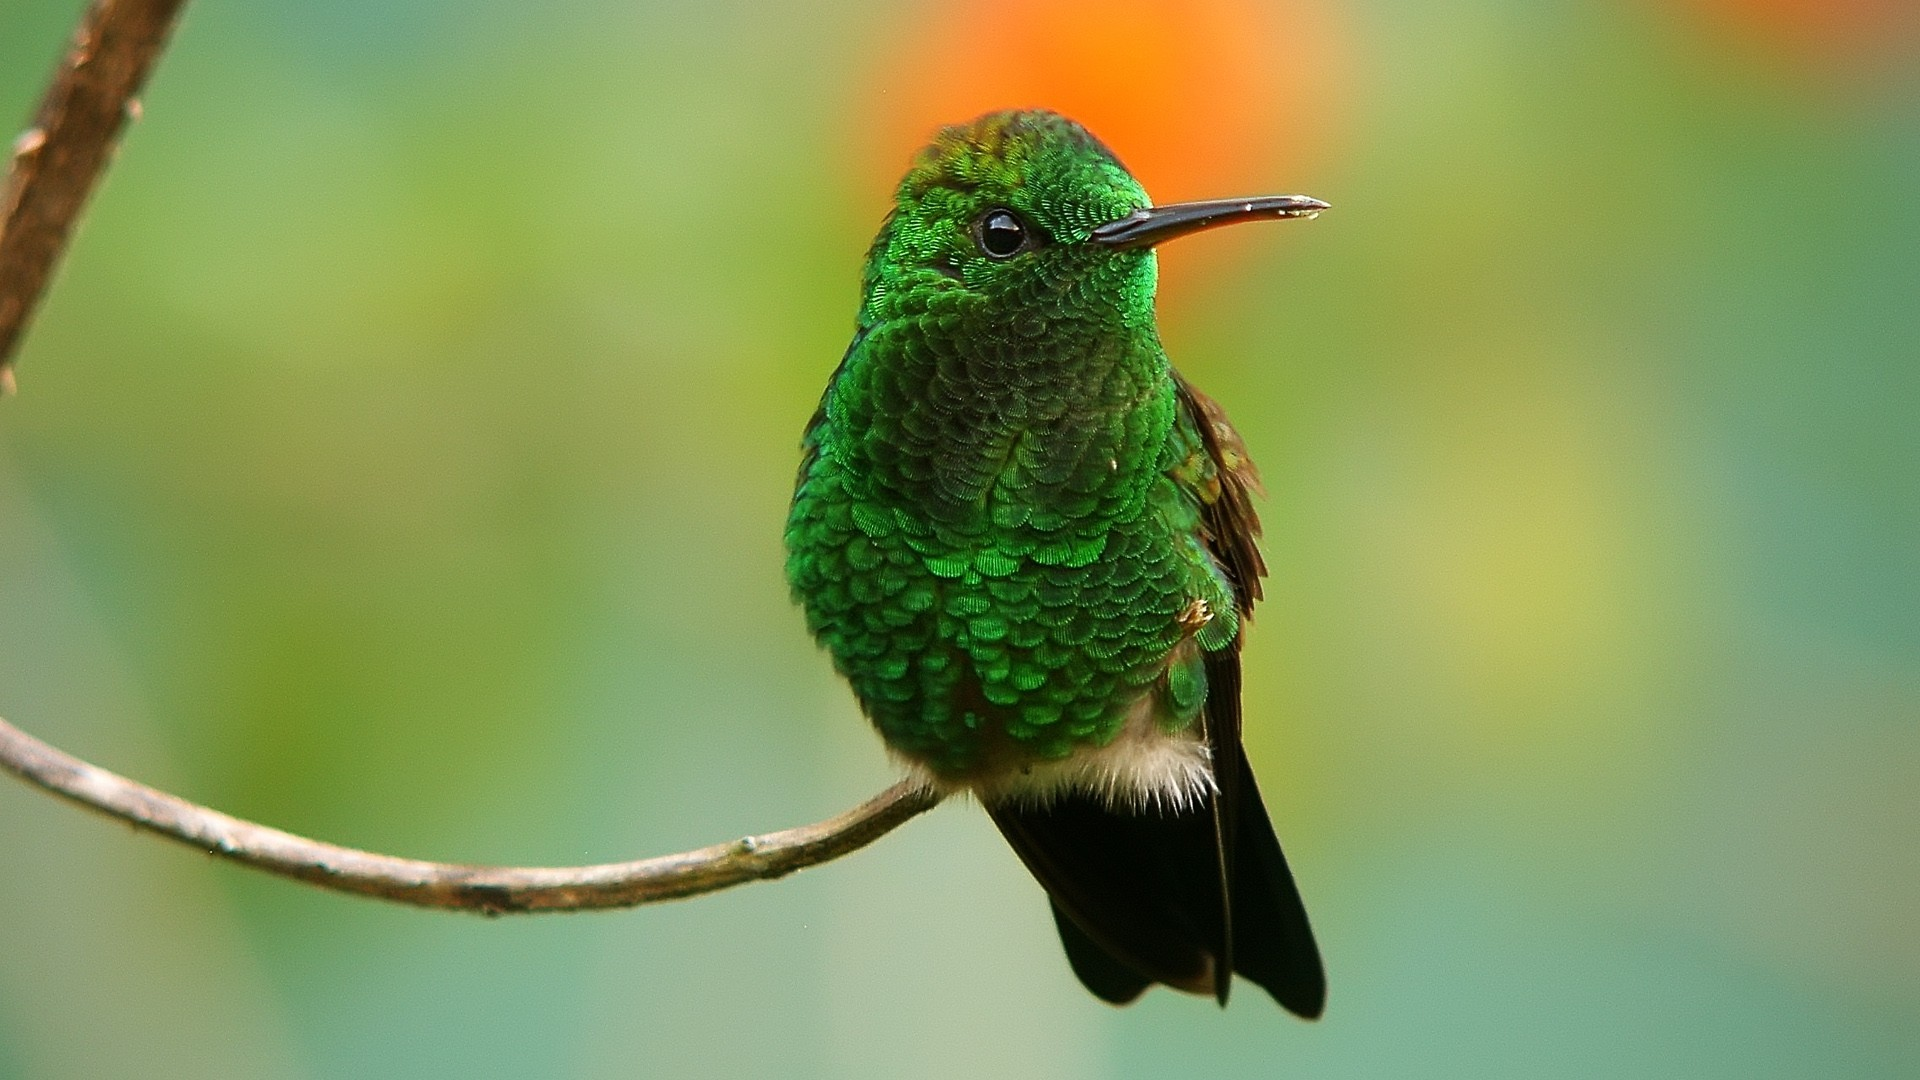 Green Birds hummingbirds iridescence HD Wallpaper